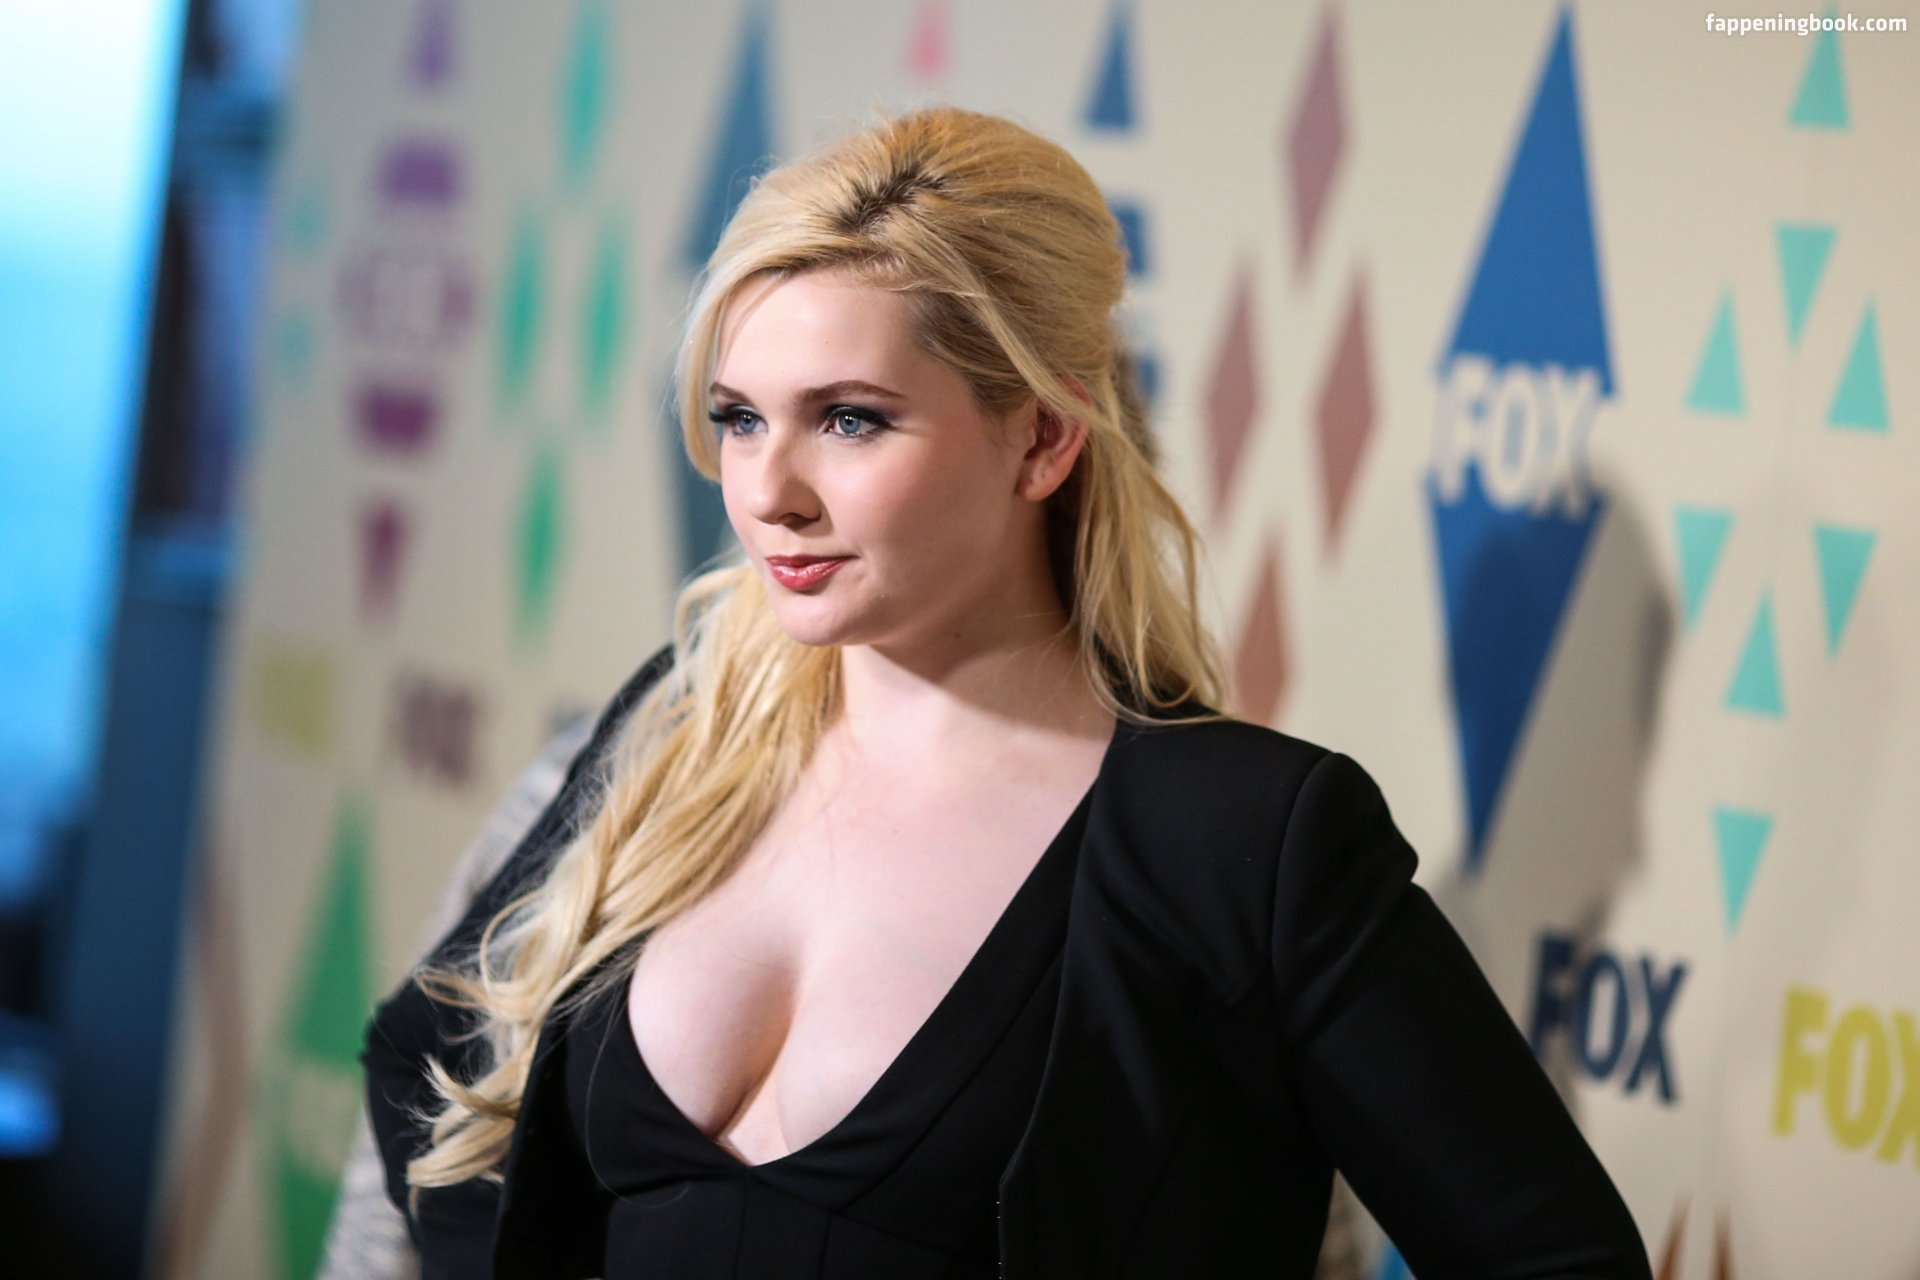 Abigail Breslin Nude, Sexy, The Fappening, Uncensored